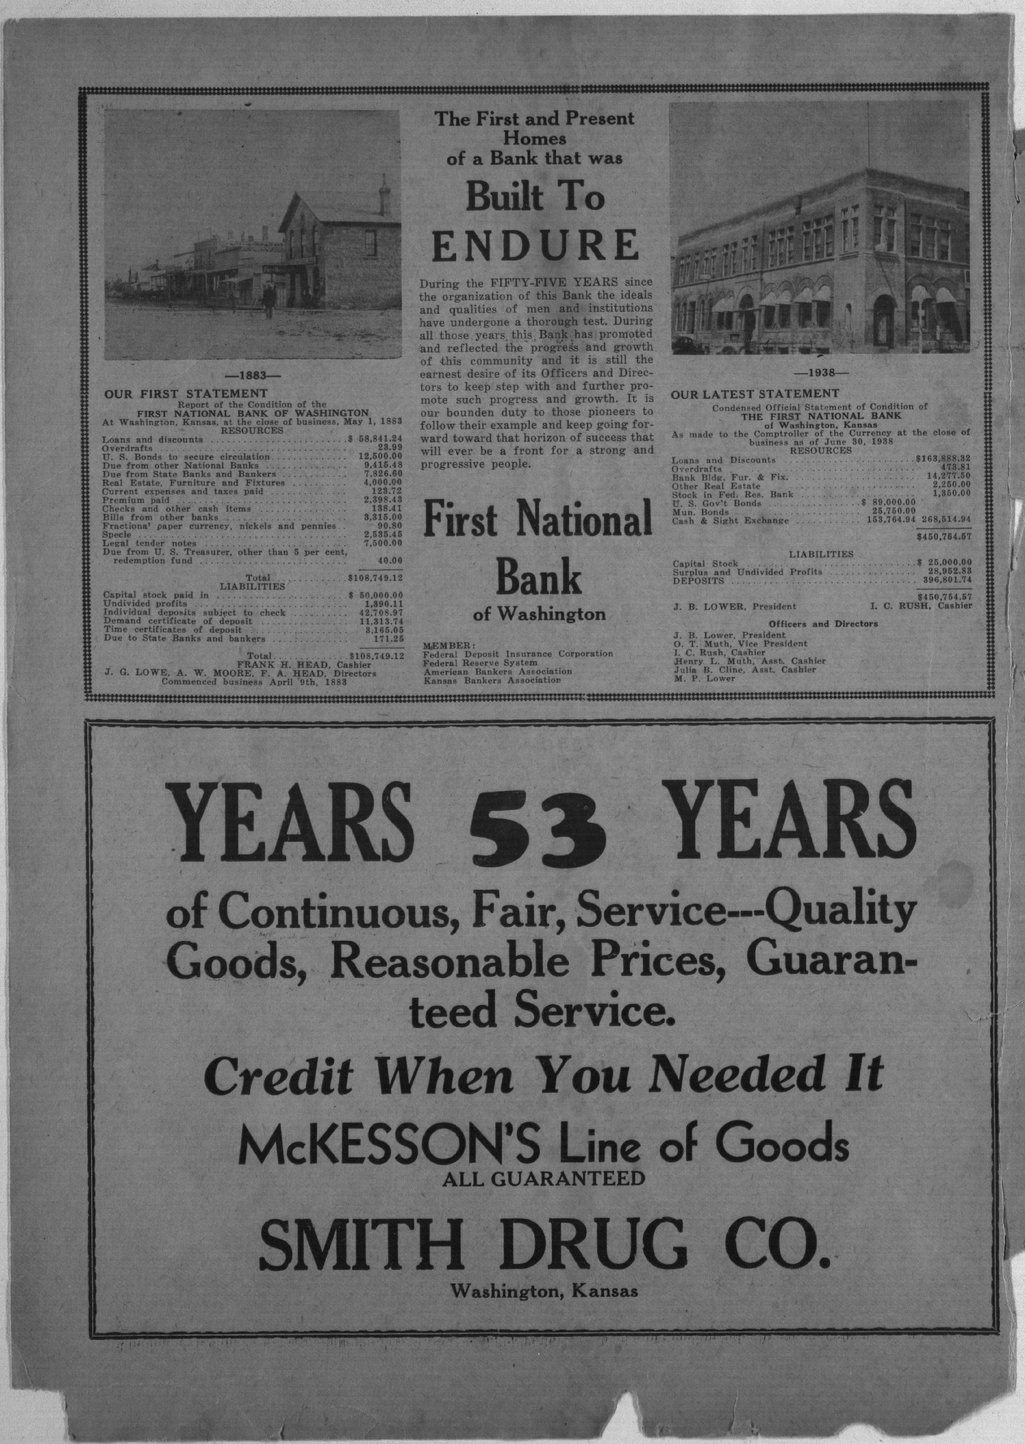 70th anniversary edition supplement to the Washington County Register - Inside Front Cover